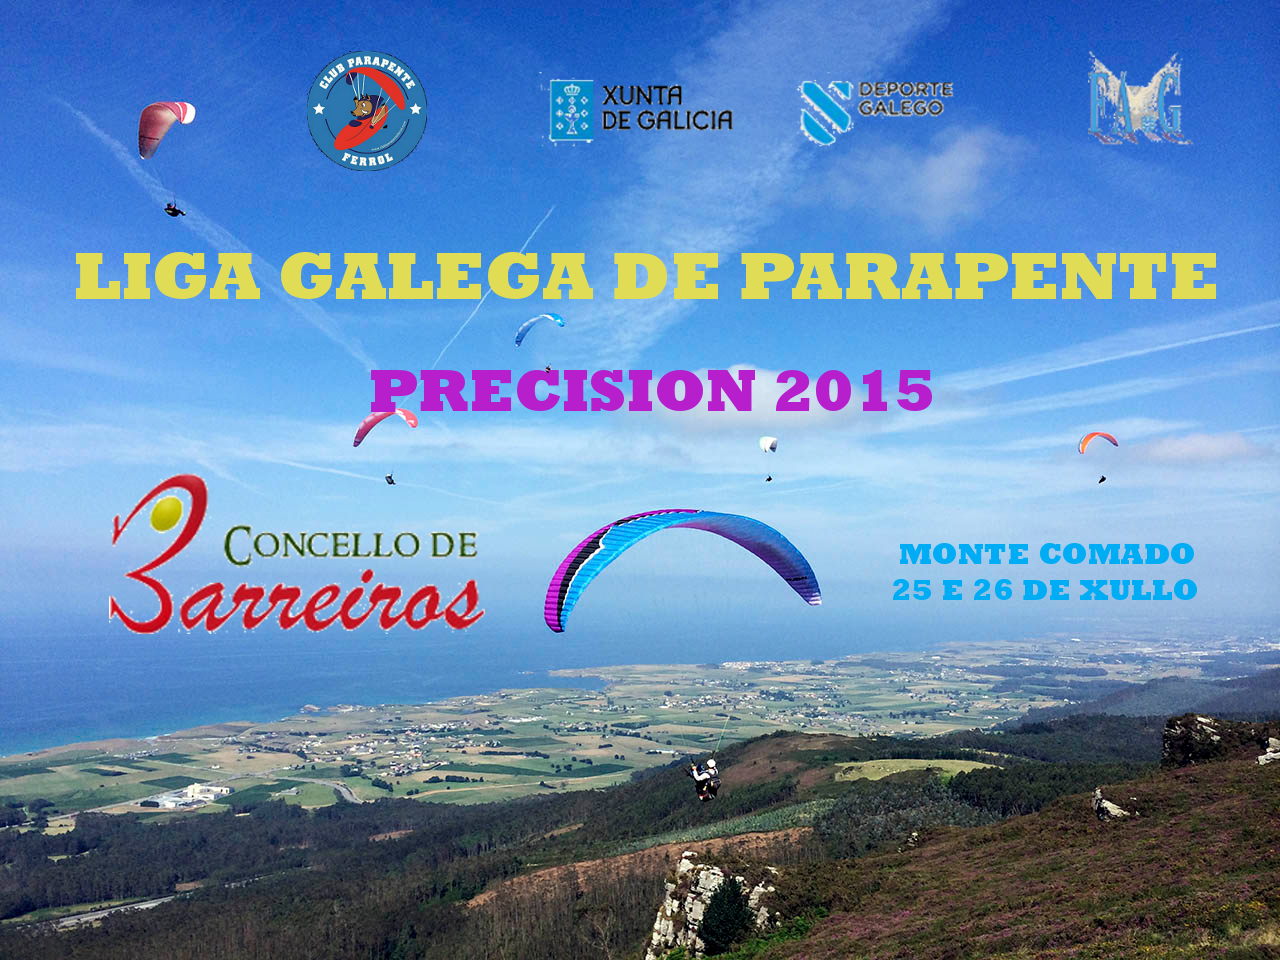 cartelComadoprecision2015